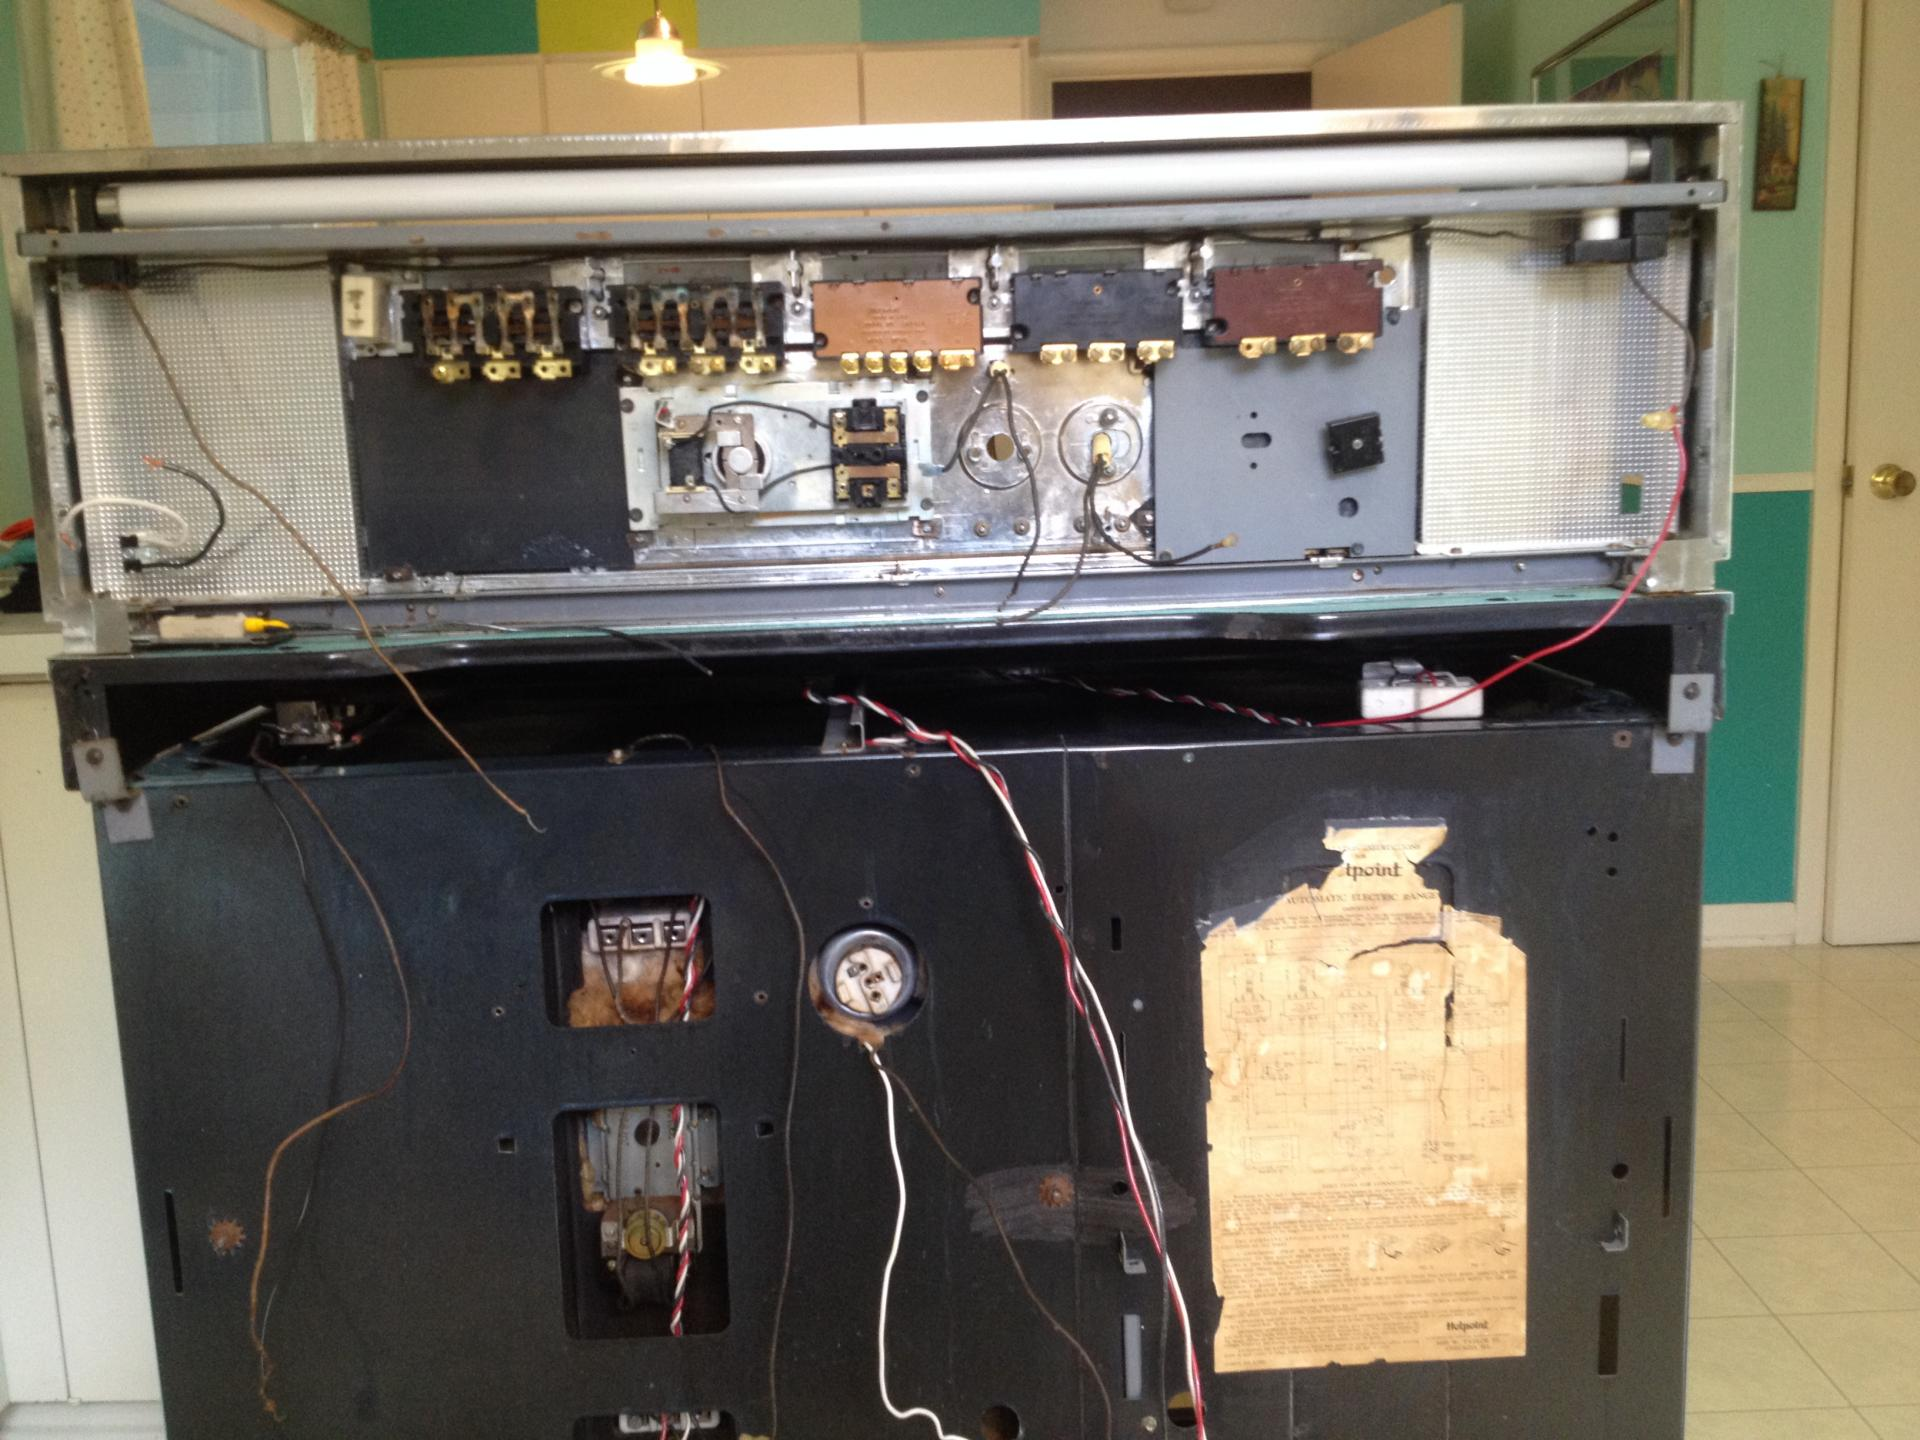 Need Help locating Burner Switches For Vintage 1960 Hotpoint Electric Range  | ApplianceBlog Repair Forums